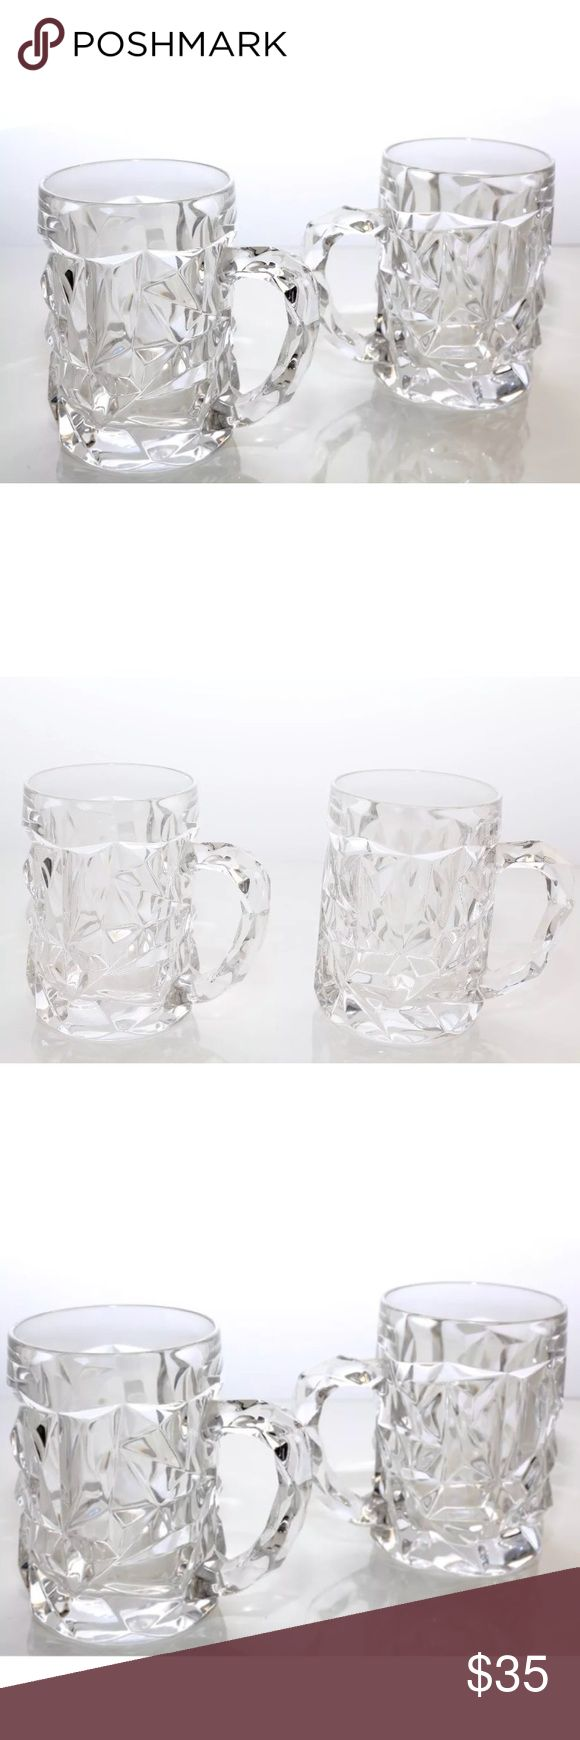 """ROCKWELL 3D CUT  2 Beer Glass Mugs Thick Handle ROCKWELL 3D CUT  2 Beer Glass Mugs Thick Beverage Clear Glassware With Handle  Condition: No cracks/ chips - in beautiful condition, used. Cool modern artistic 3D Diamond like cuts.  Measures: 5"""" Height x 3.5"""" Diameter Rockwell Other"""